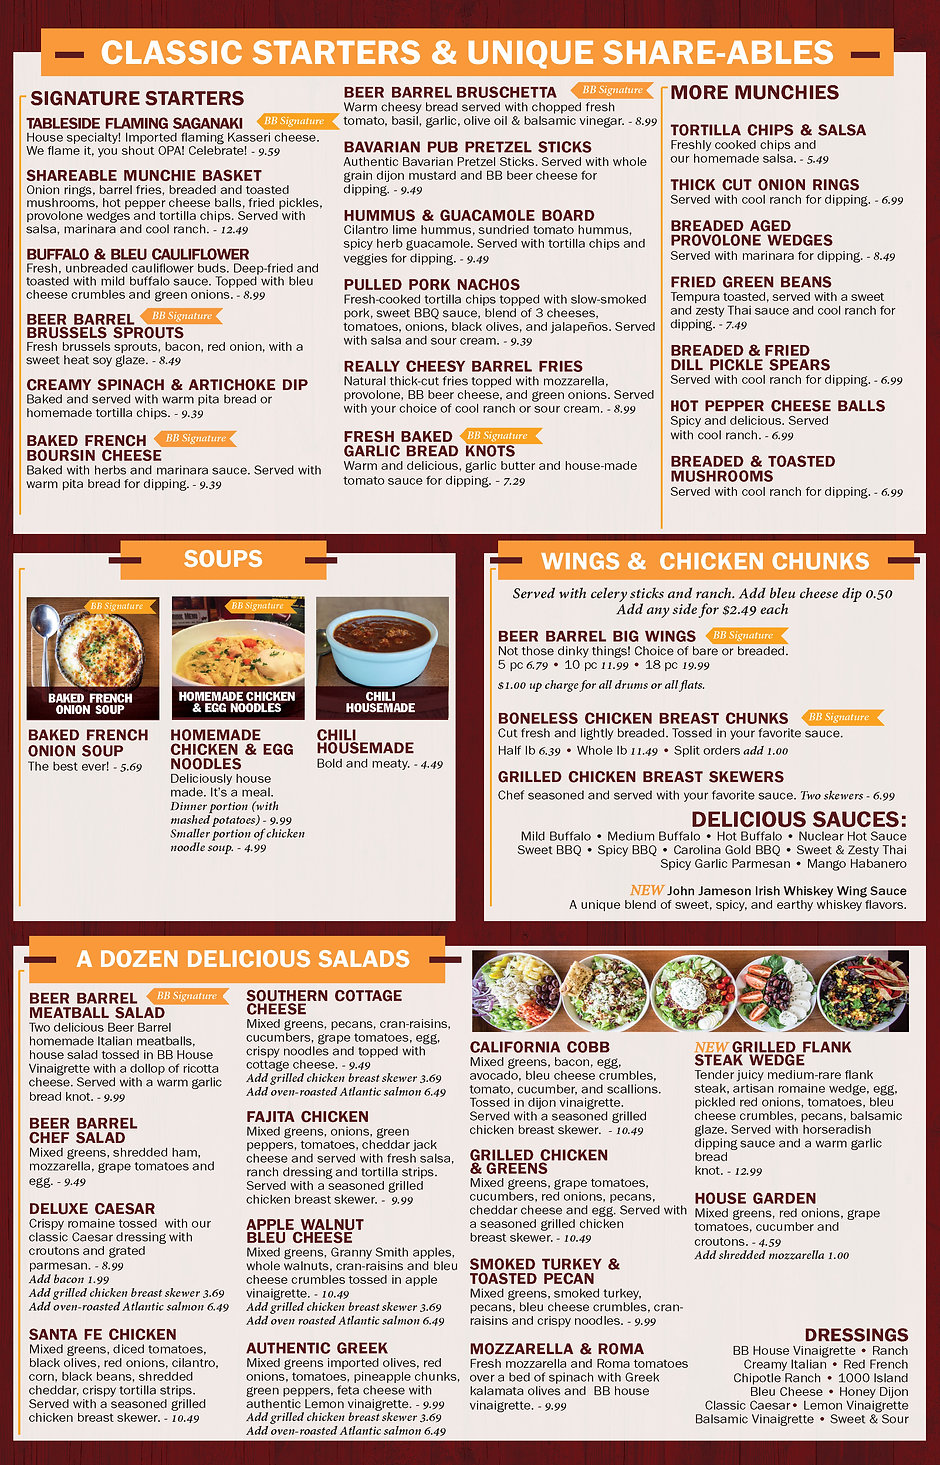 Large Market Food Menu Rev 9.10.2020 - M